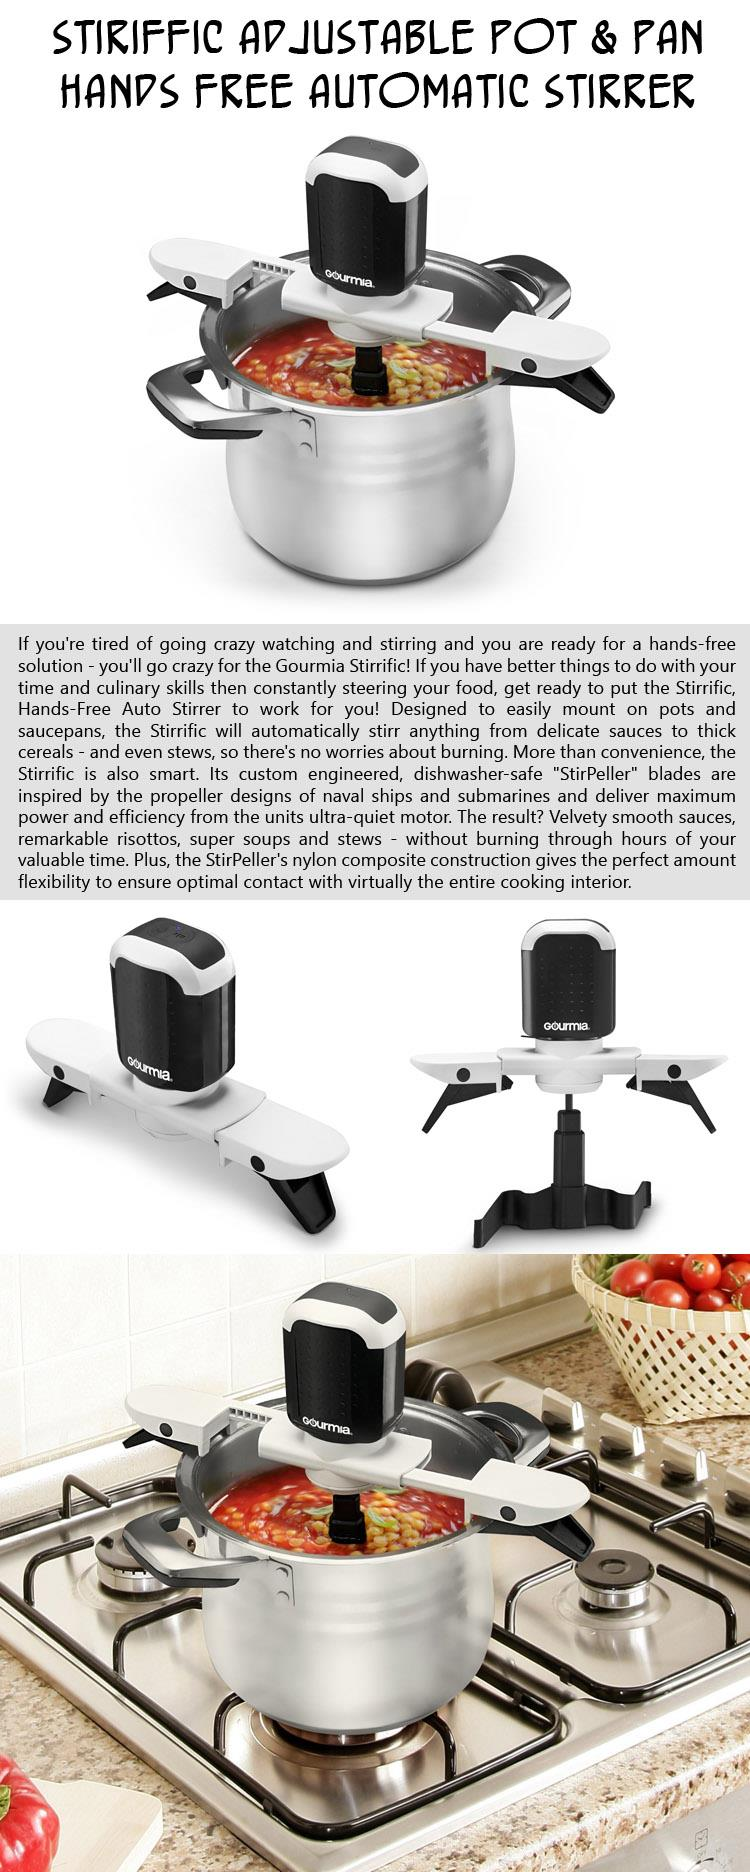 stiriffic-adjustable-pot-pan-hands-free-automatic-stirrer